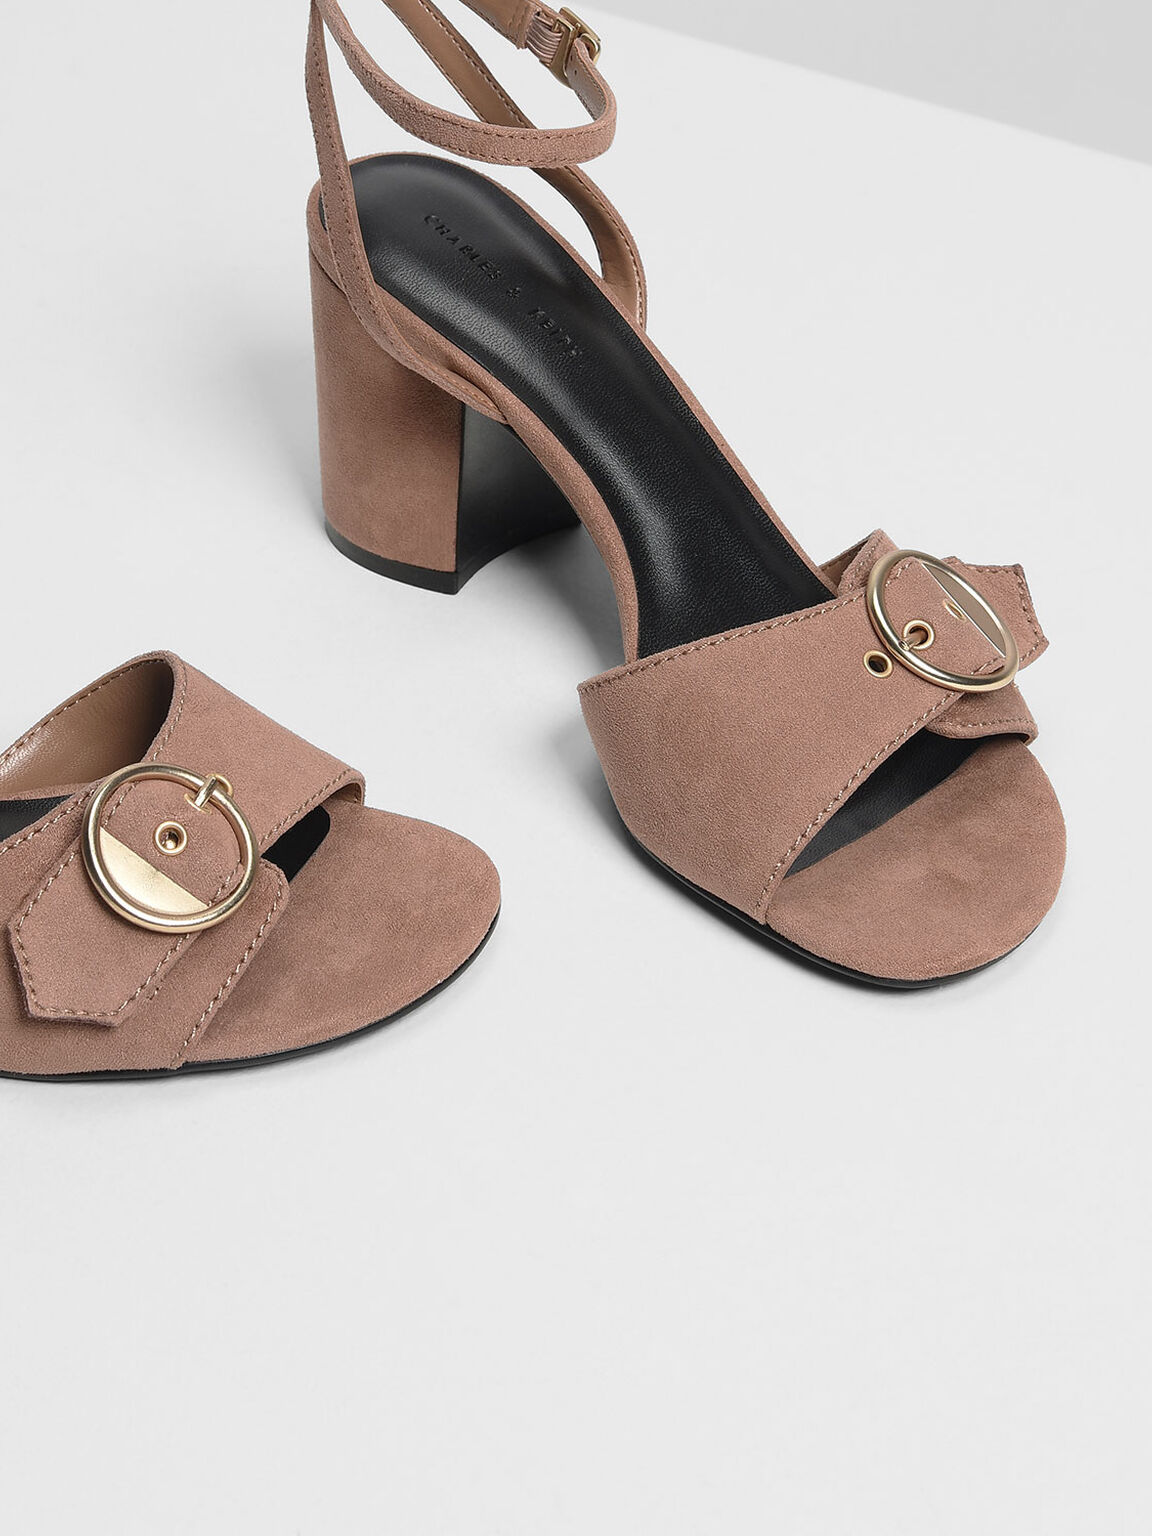 Gold Buckle Detail Heeled Sandals, Taupe, hi-res